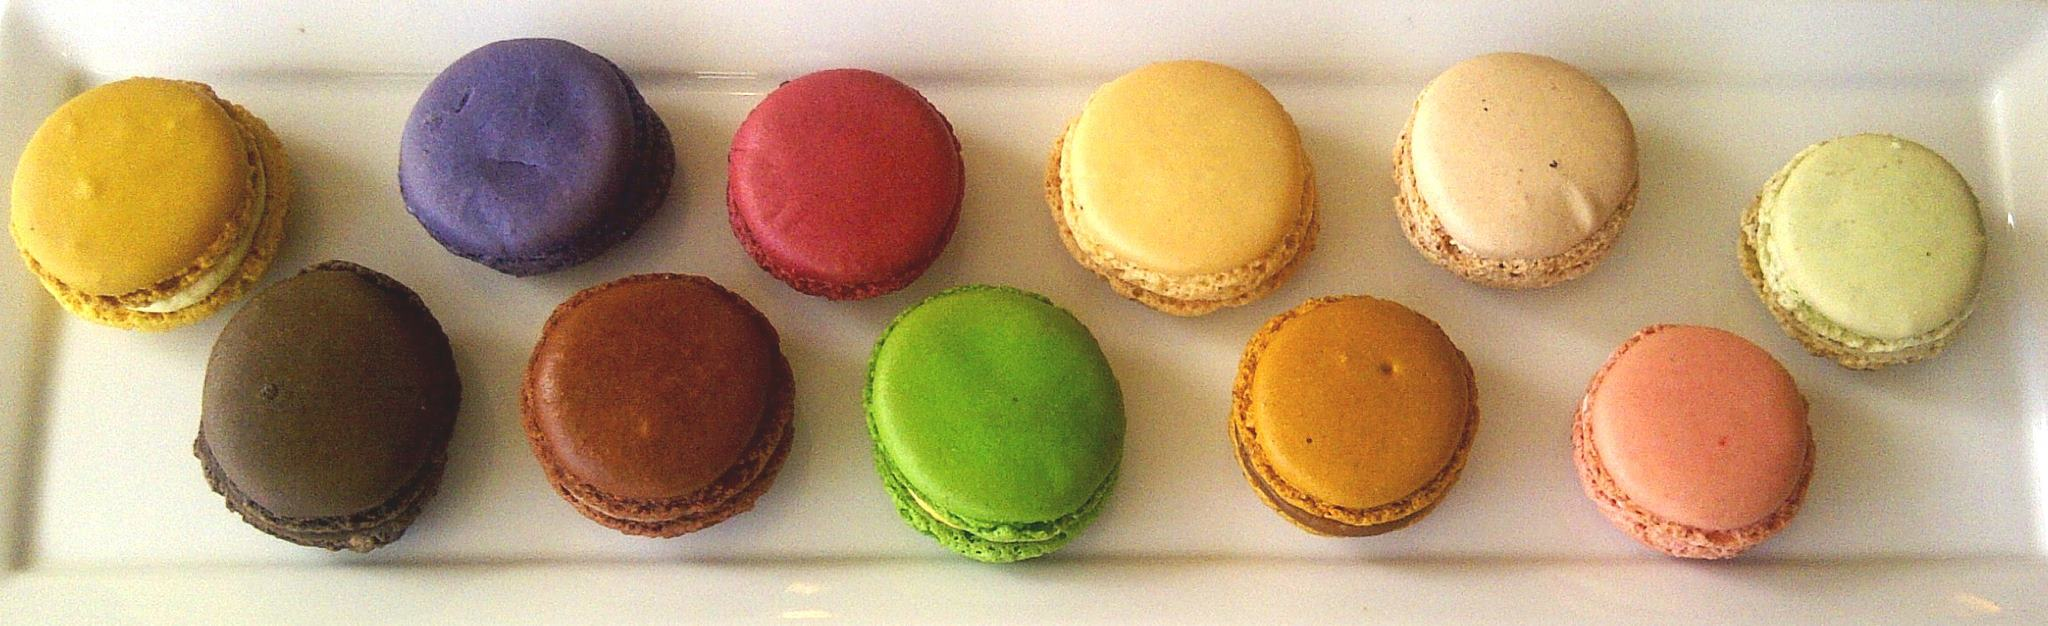 Meli-Melo's French macarons